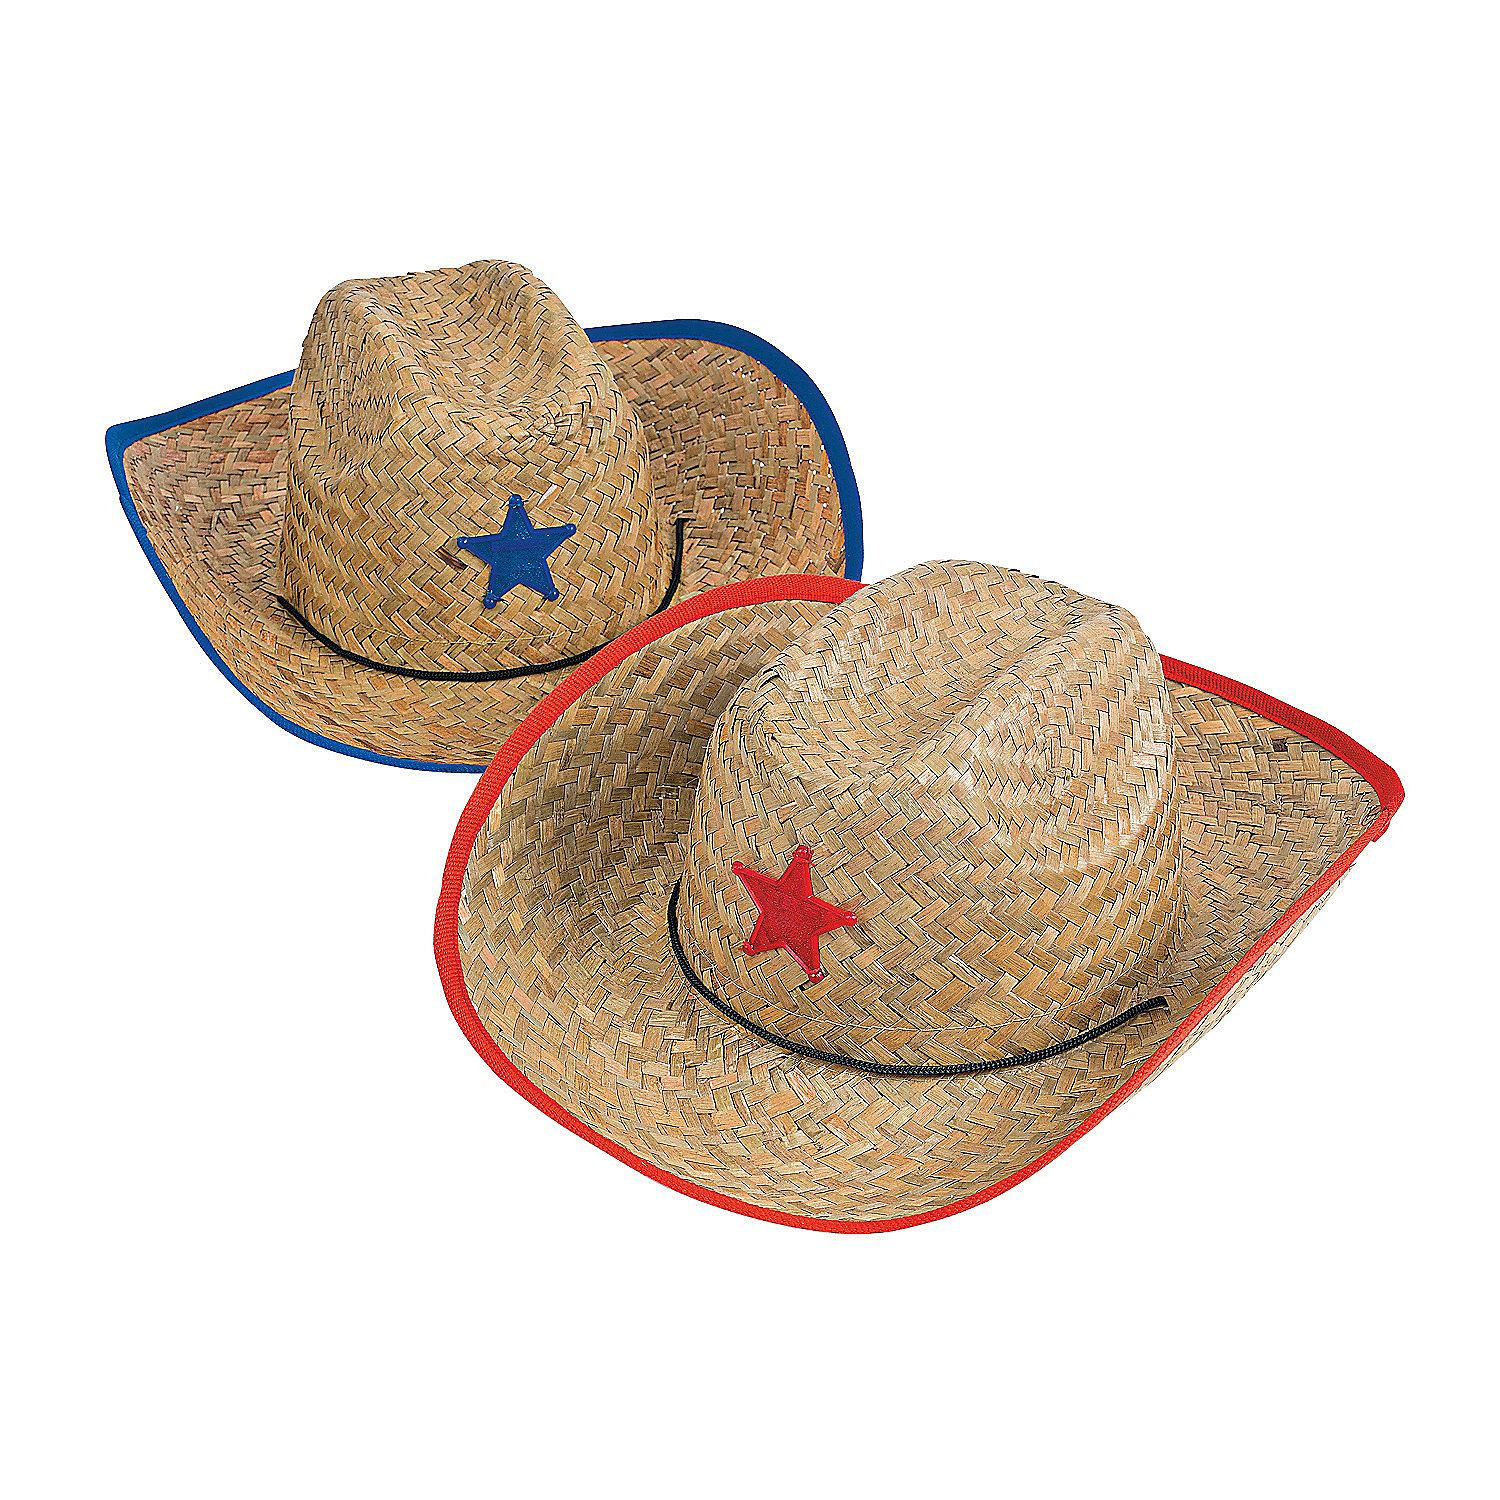 0142a31c935f2 Child s Cowboy Hats with Star (OrientalTrading.com) Got these for my  Spreckels Sprouts Daycare Kids to wear on the 4th of July. Perfect for our  patriotic ...